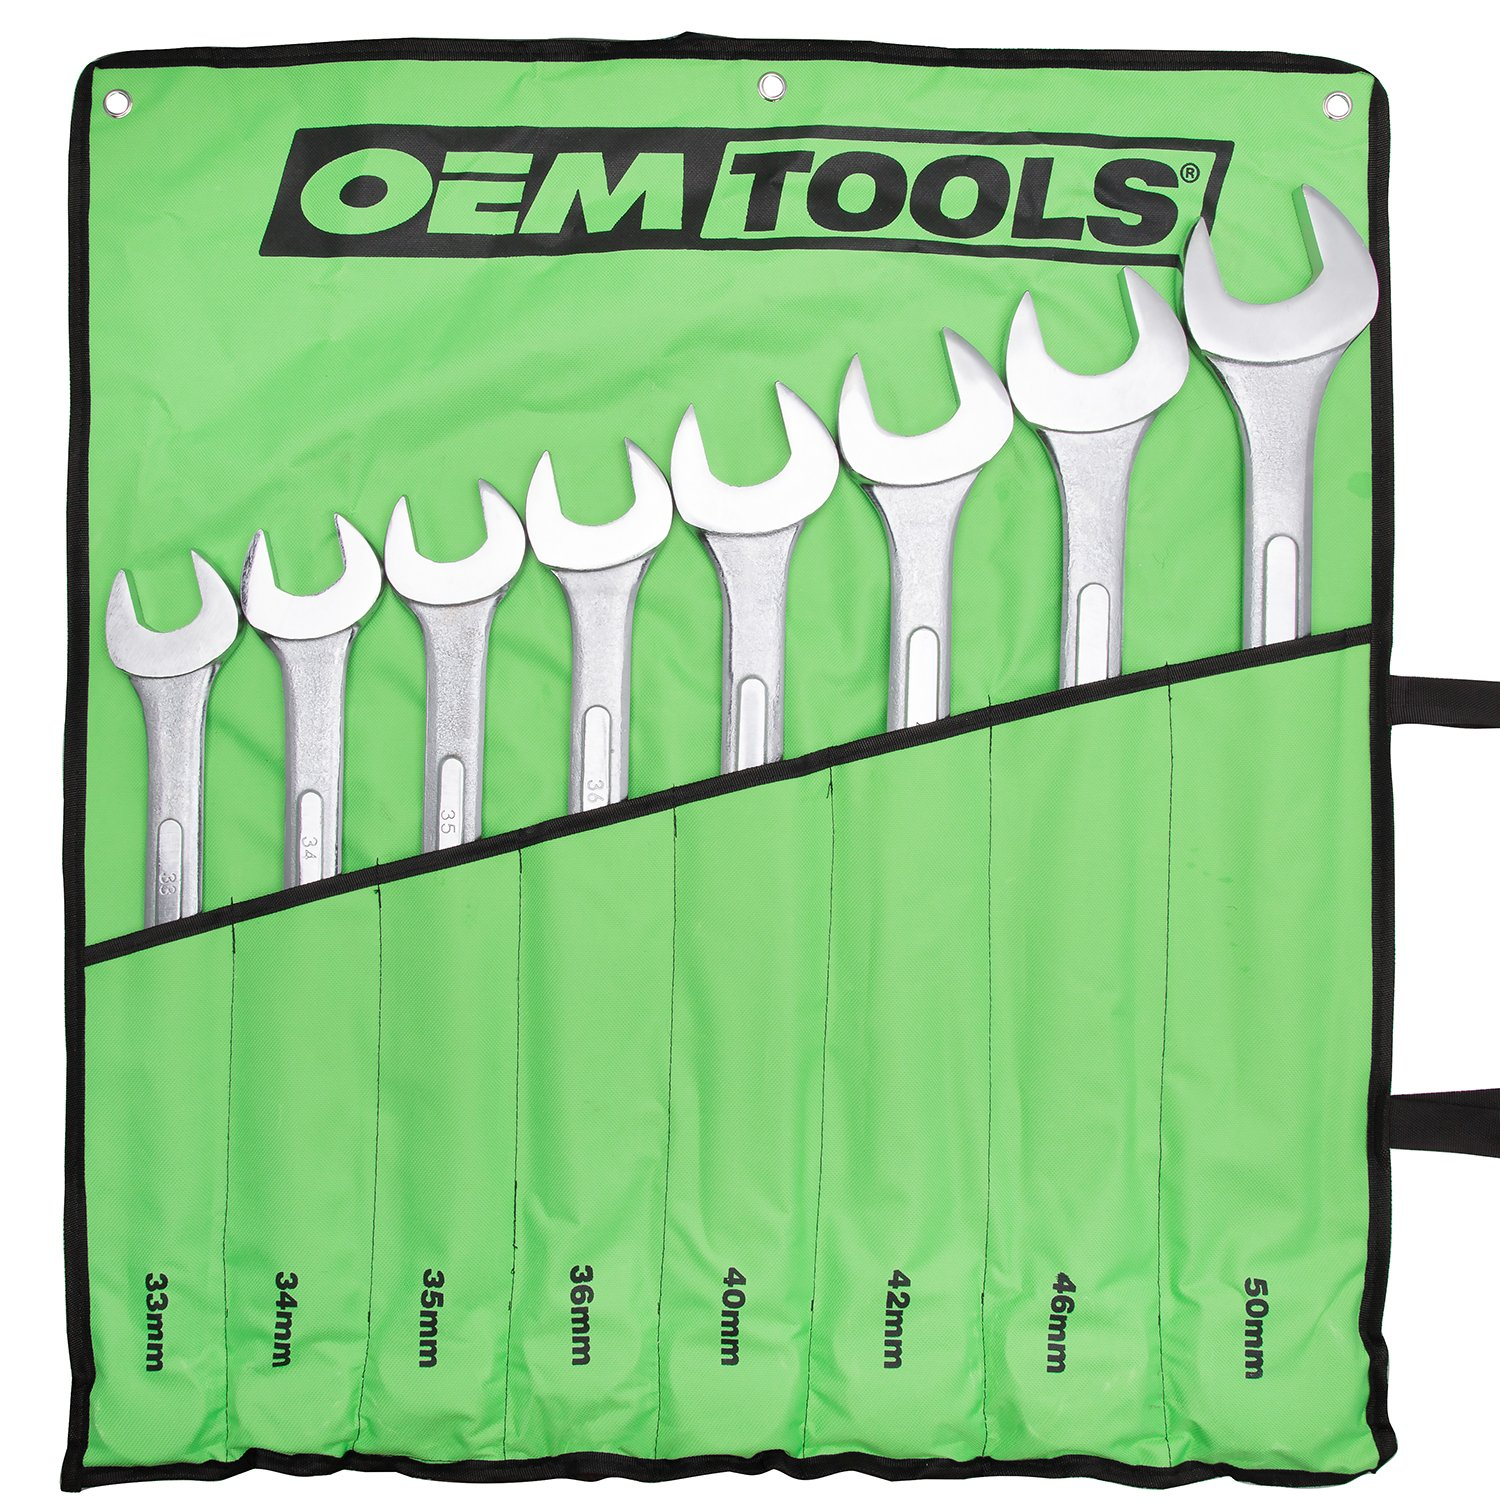 Jumbo Combination Wrench Set, 8-Piece (33 mm to 50 mm)